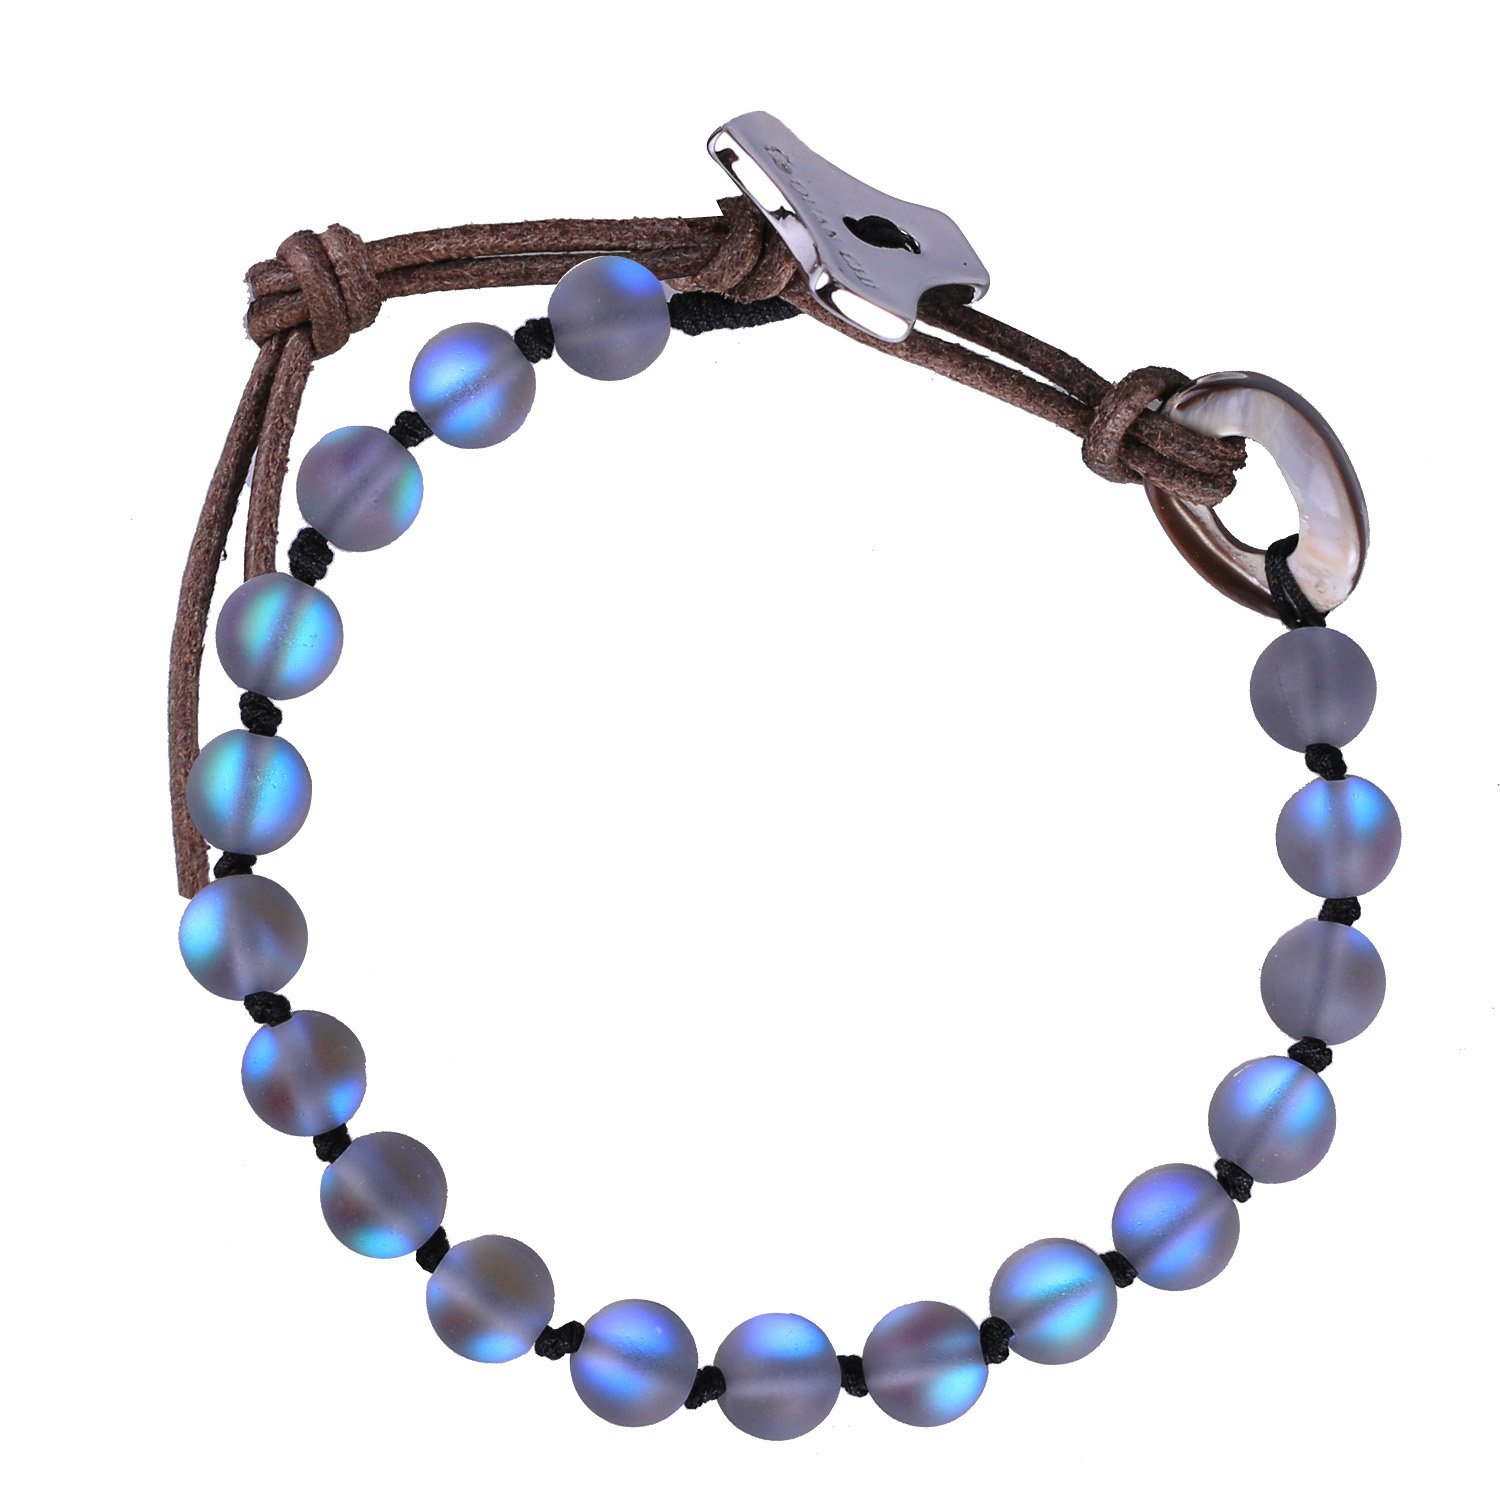 C·QUAN CHI Gem Semi Precious Gemstone Moonstone Bracelet Charms Beaded Bracelet Adjustable,Moonstone Jewelry for Women Gifts for Man Unisex